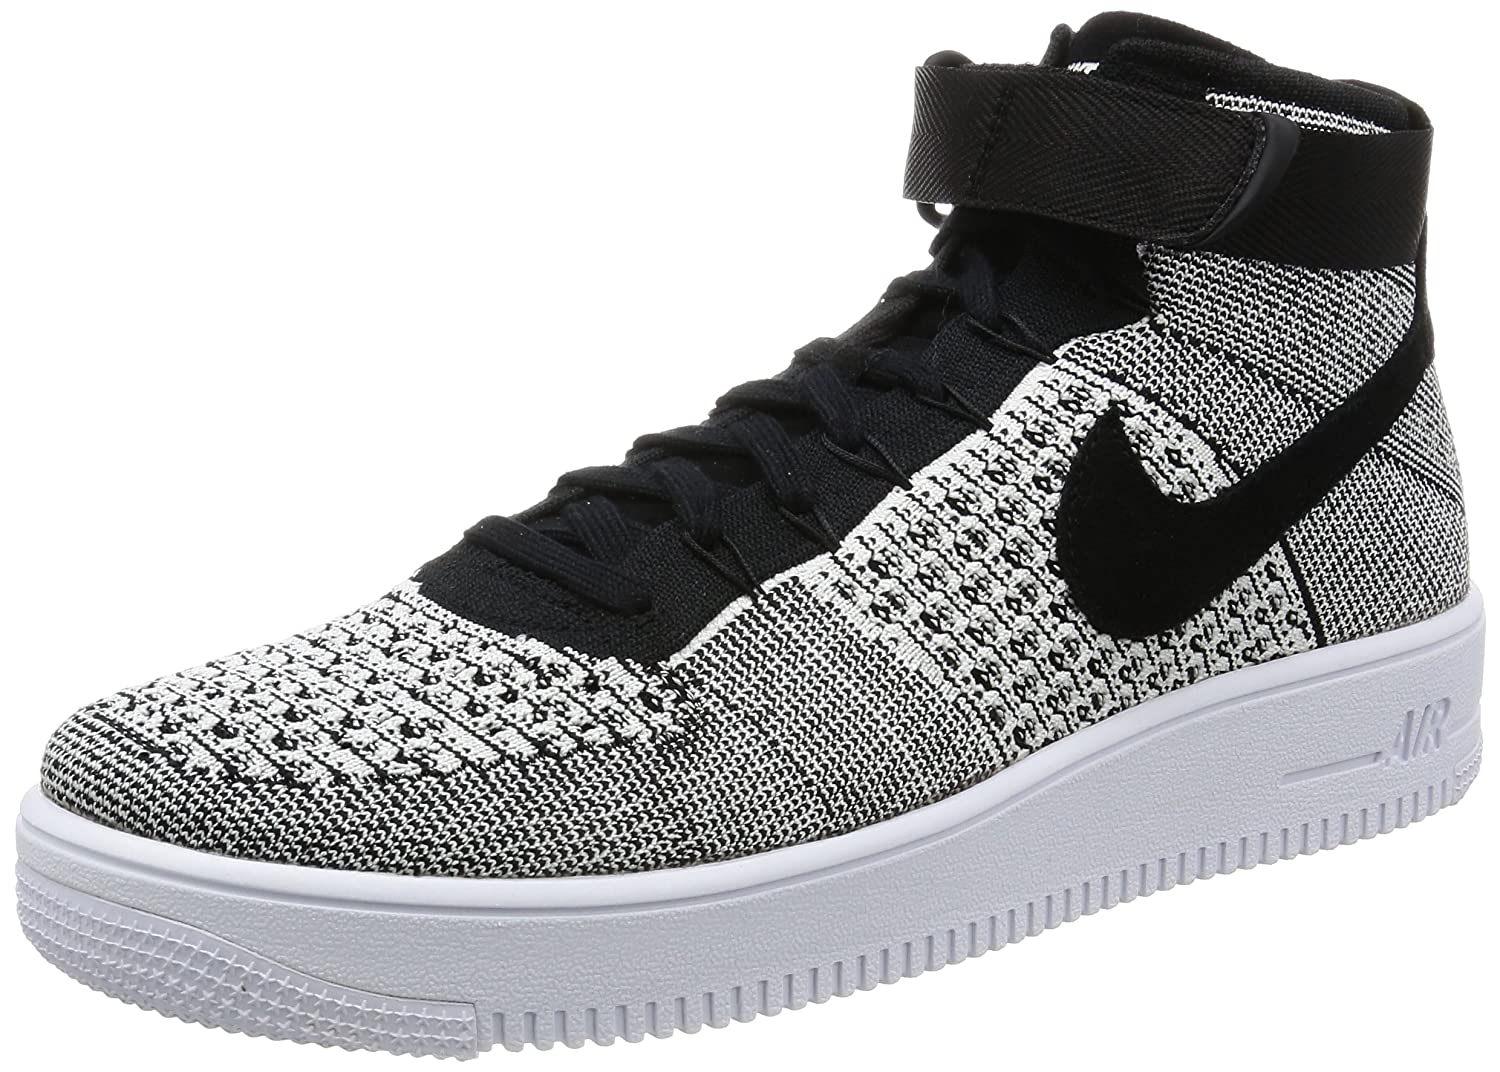 reputable site 028a5 efbfa Nike Af1 Ultra Flyknit Mid Mens